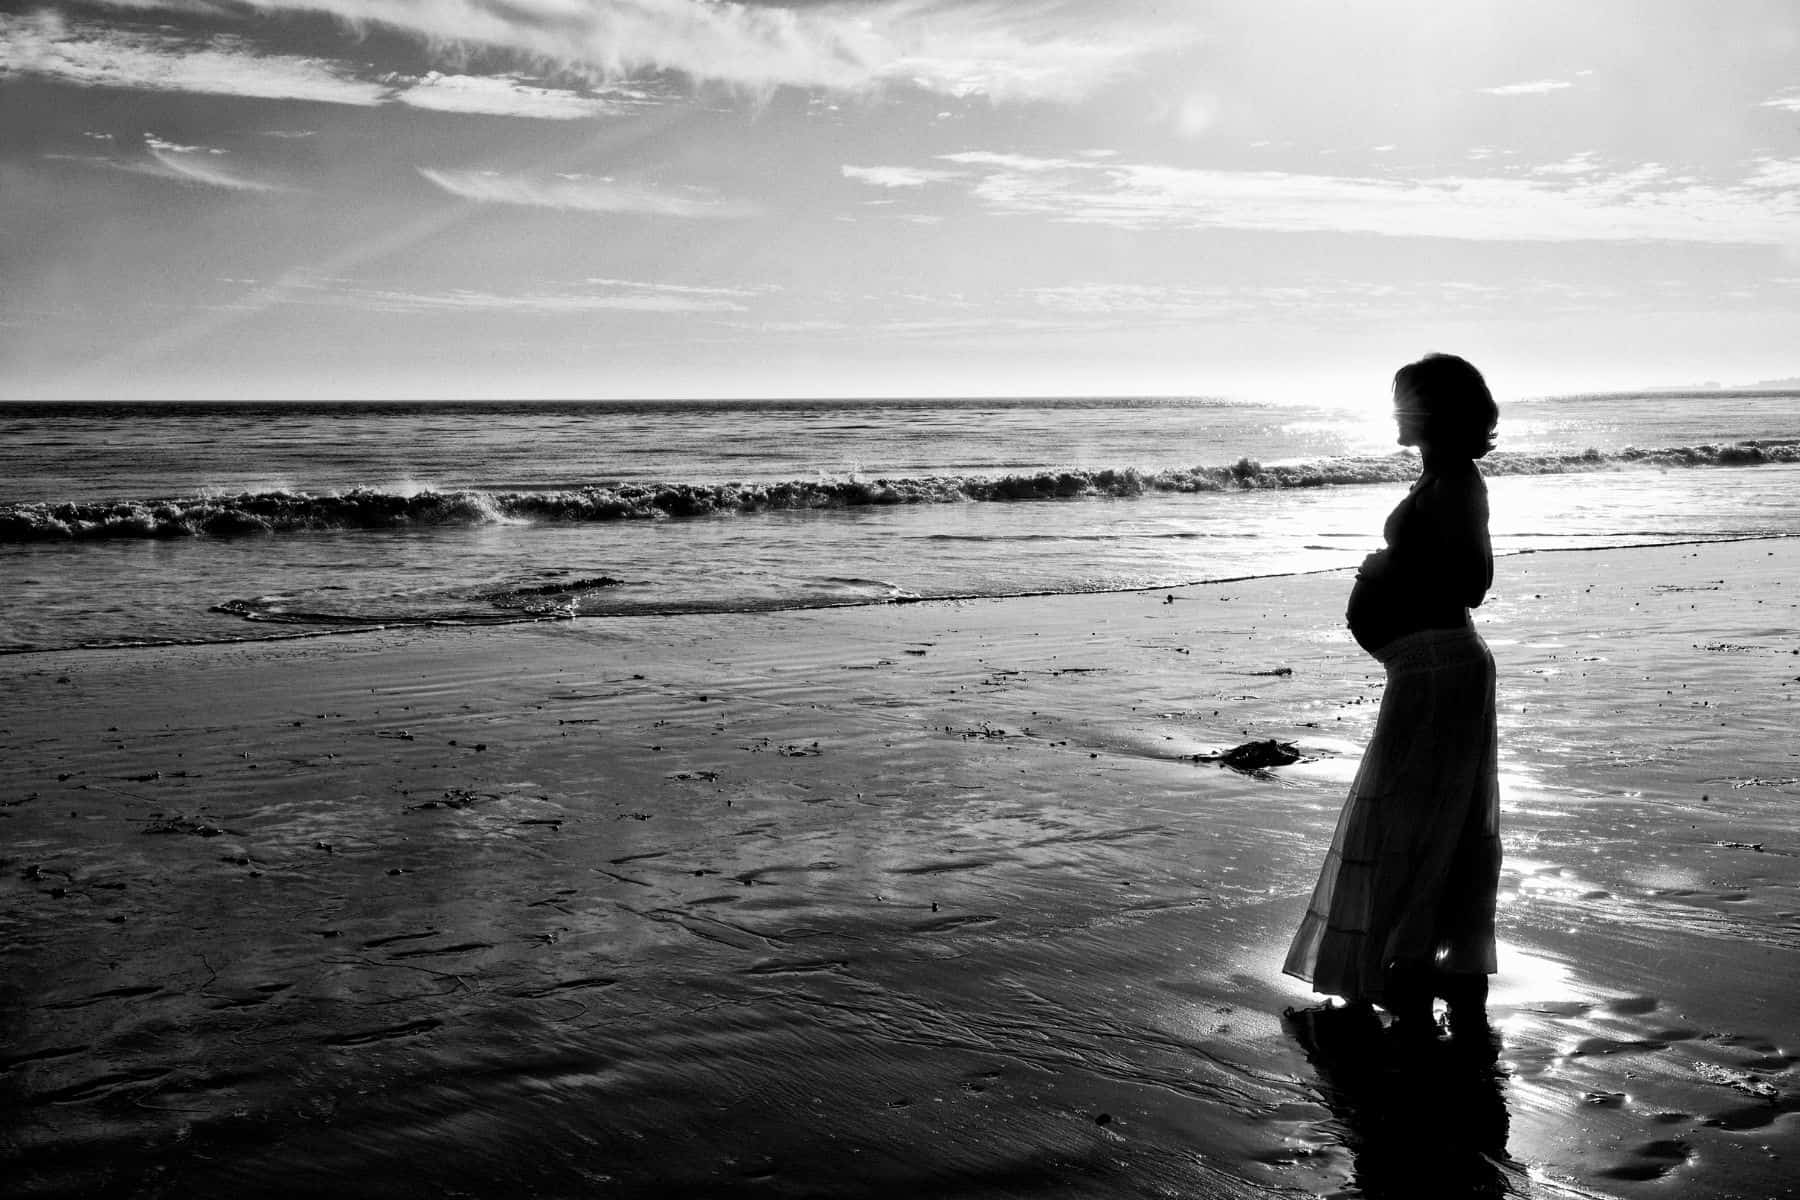 backlit beach silhouette photo - pregnant belly side view